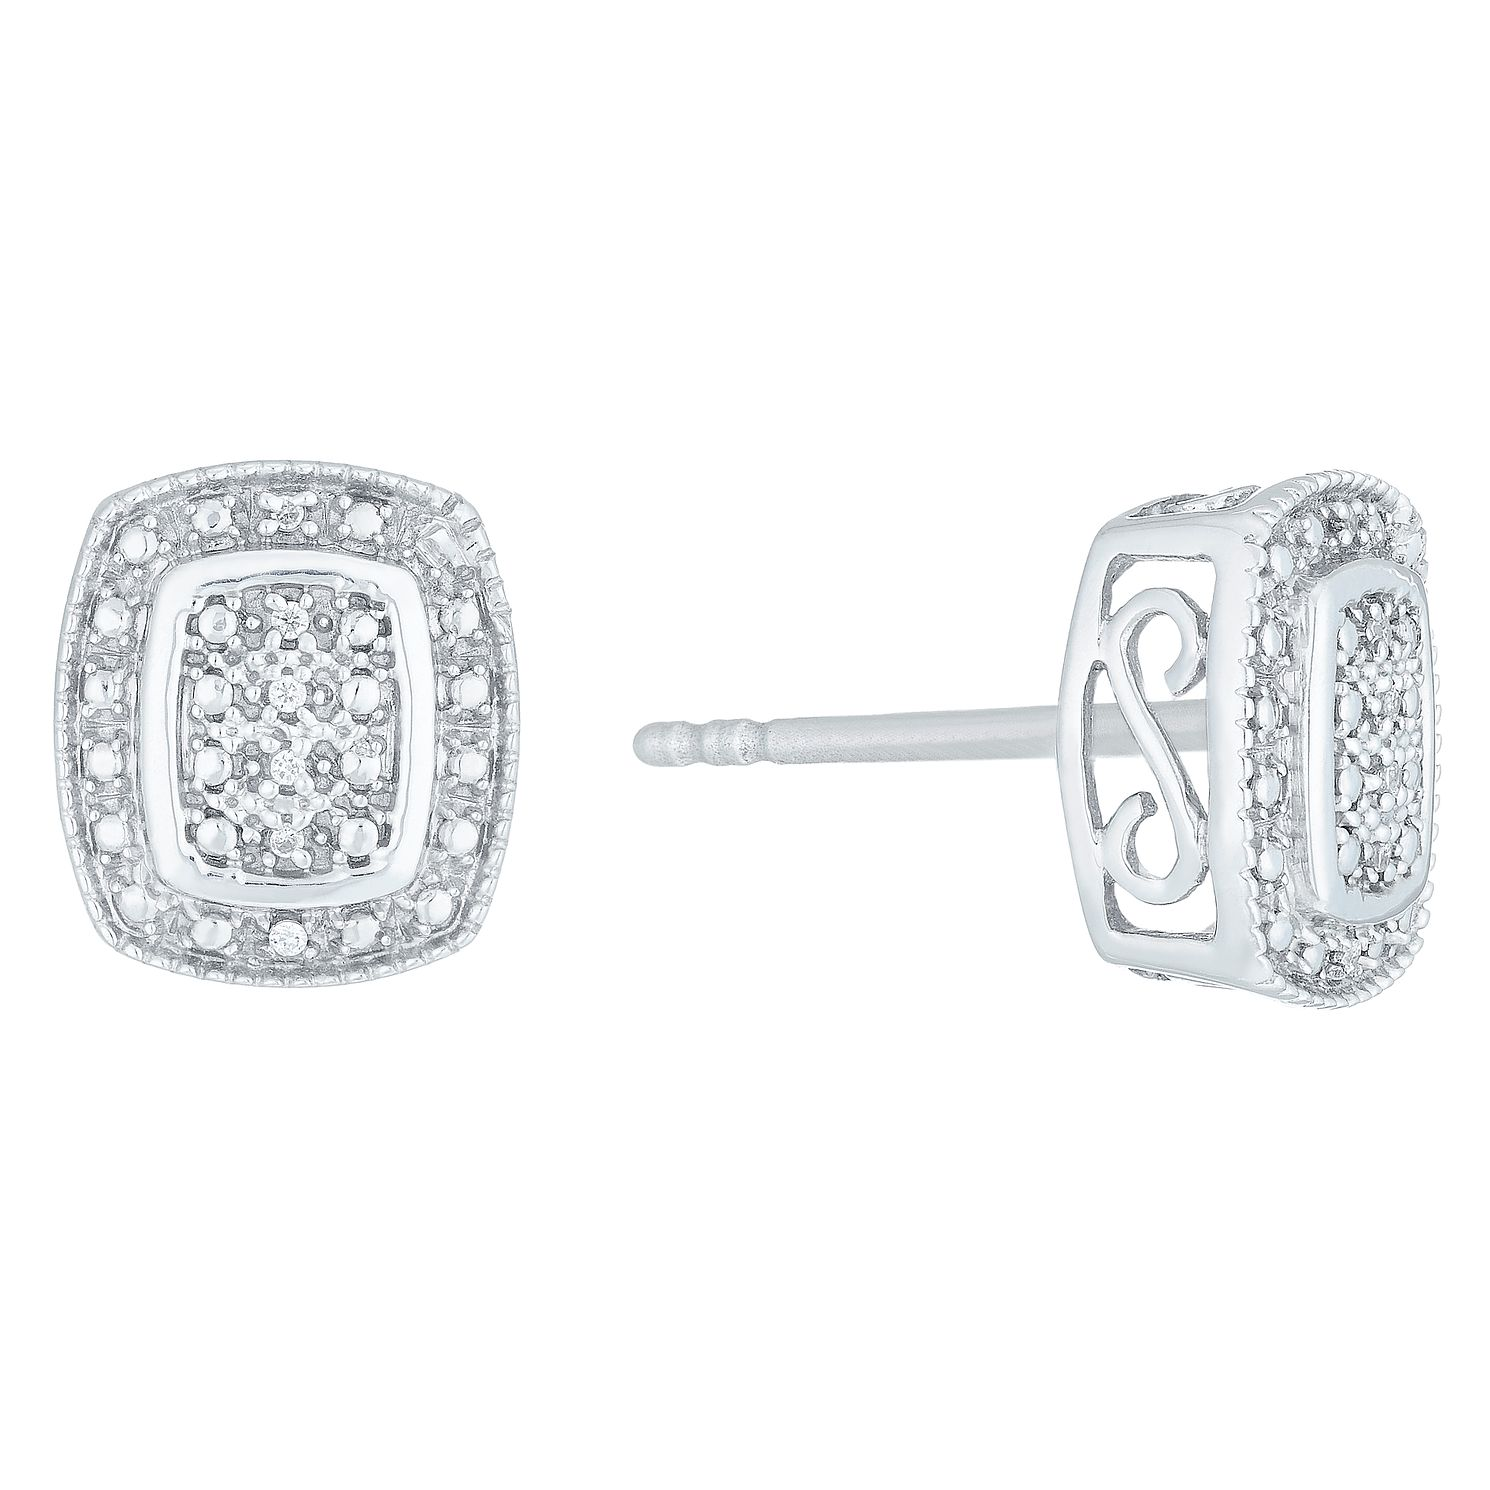 earrings silver bling black square diamond sqrp jewelry az cz screw stud cut princess sterling back